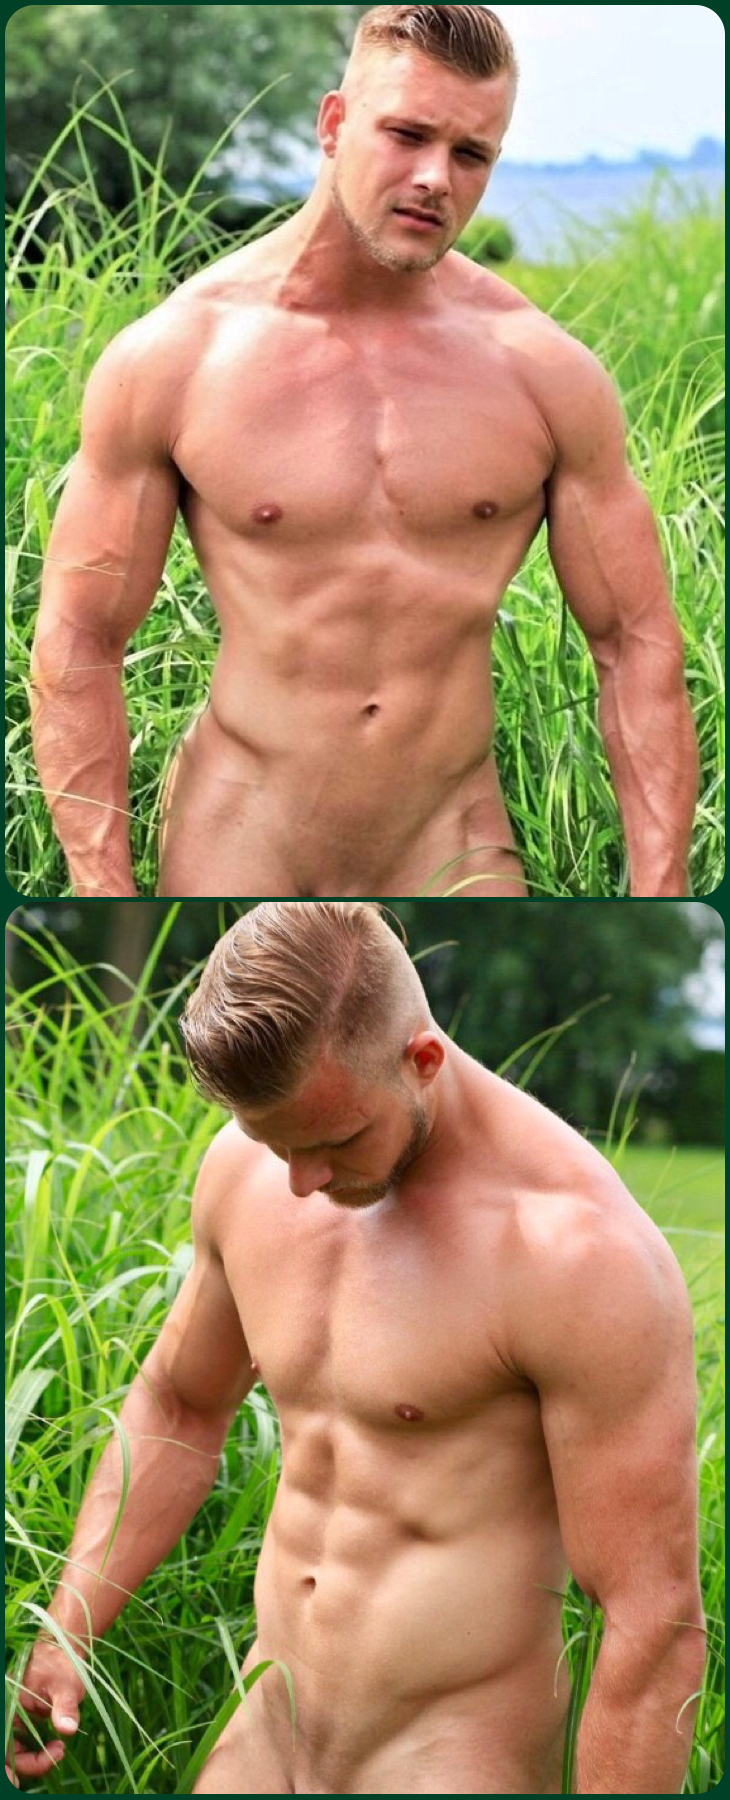 Muscle men plowing